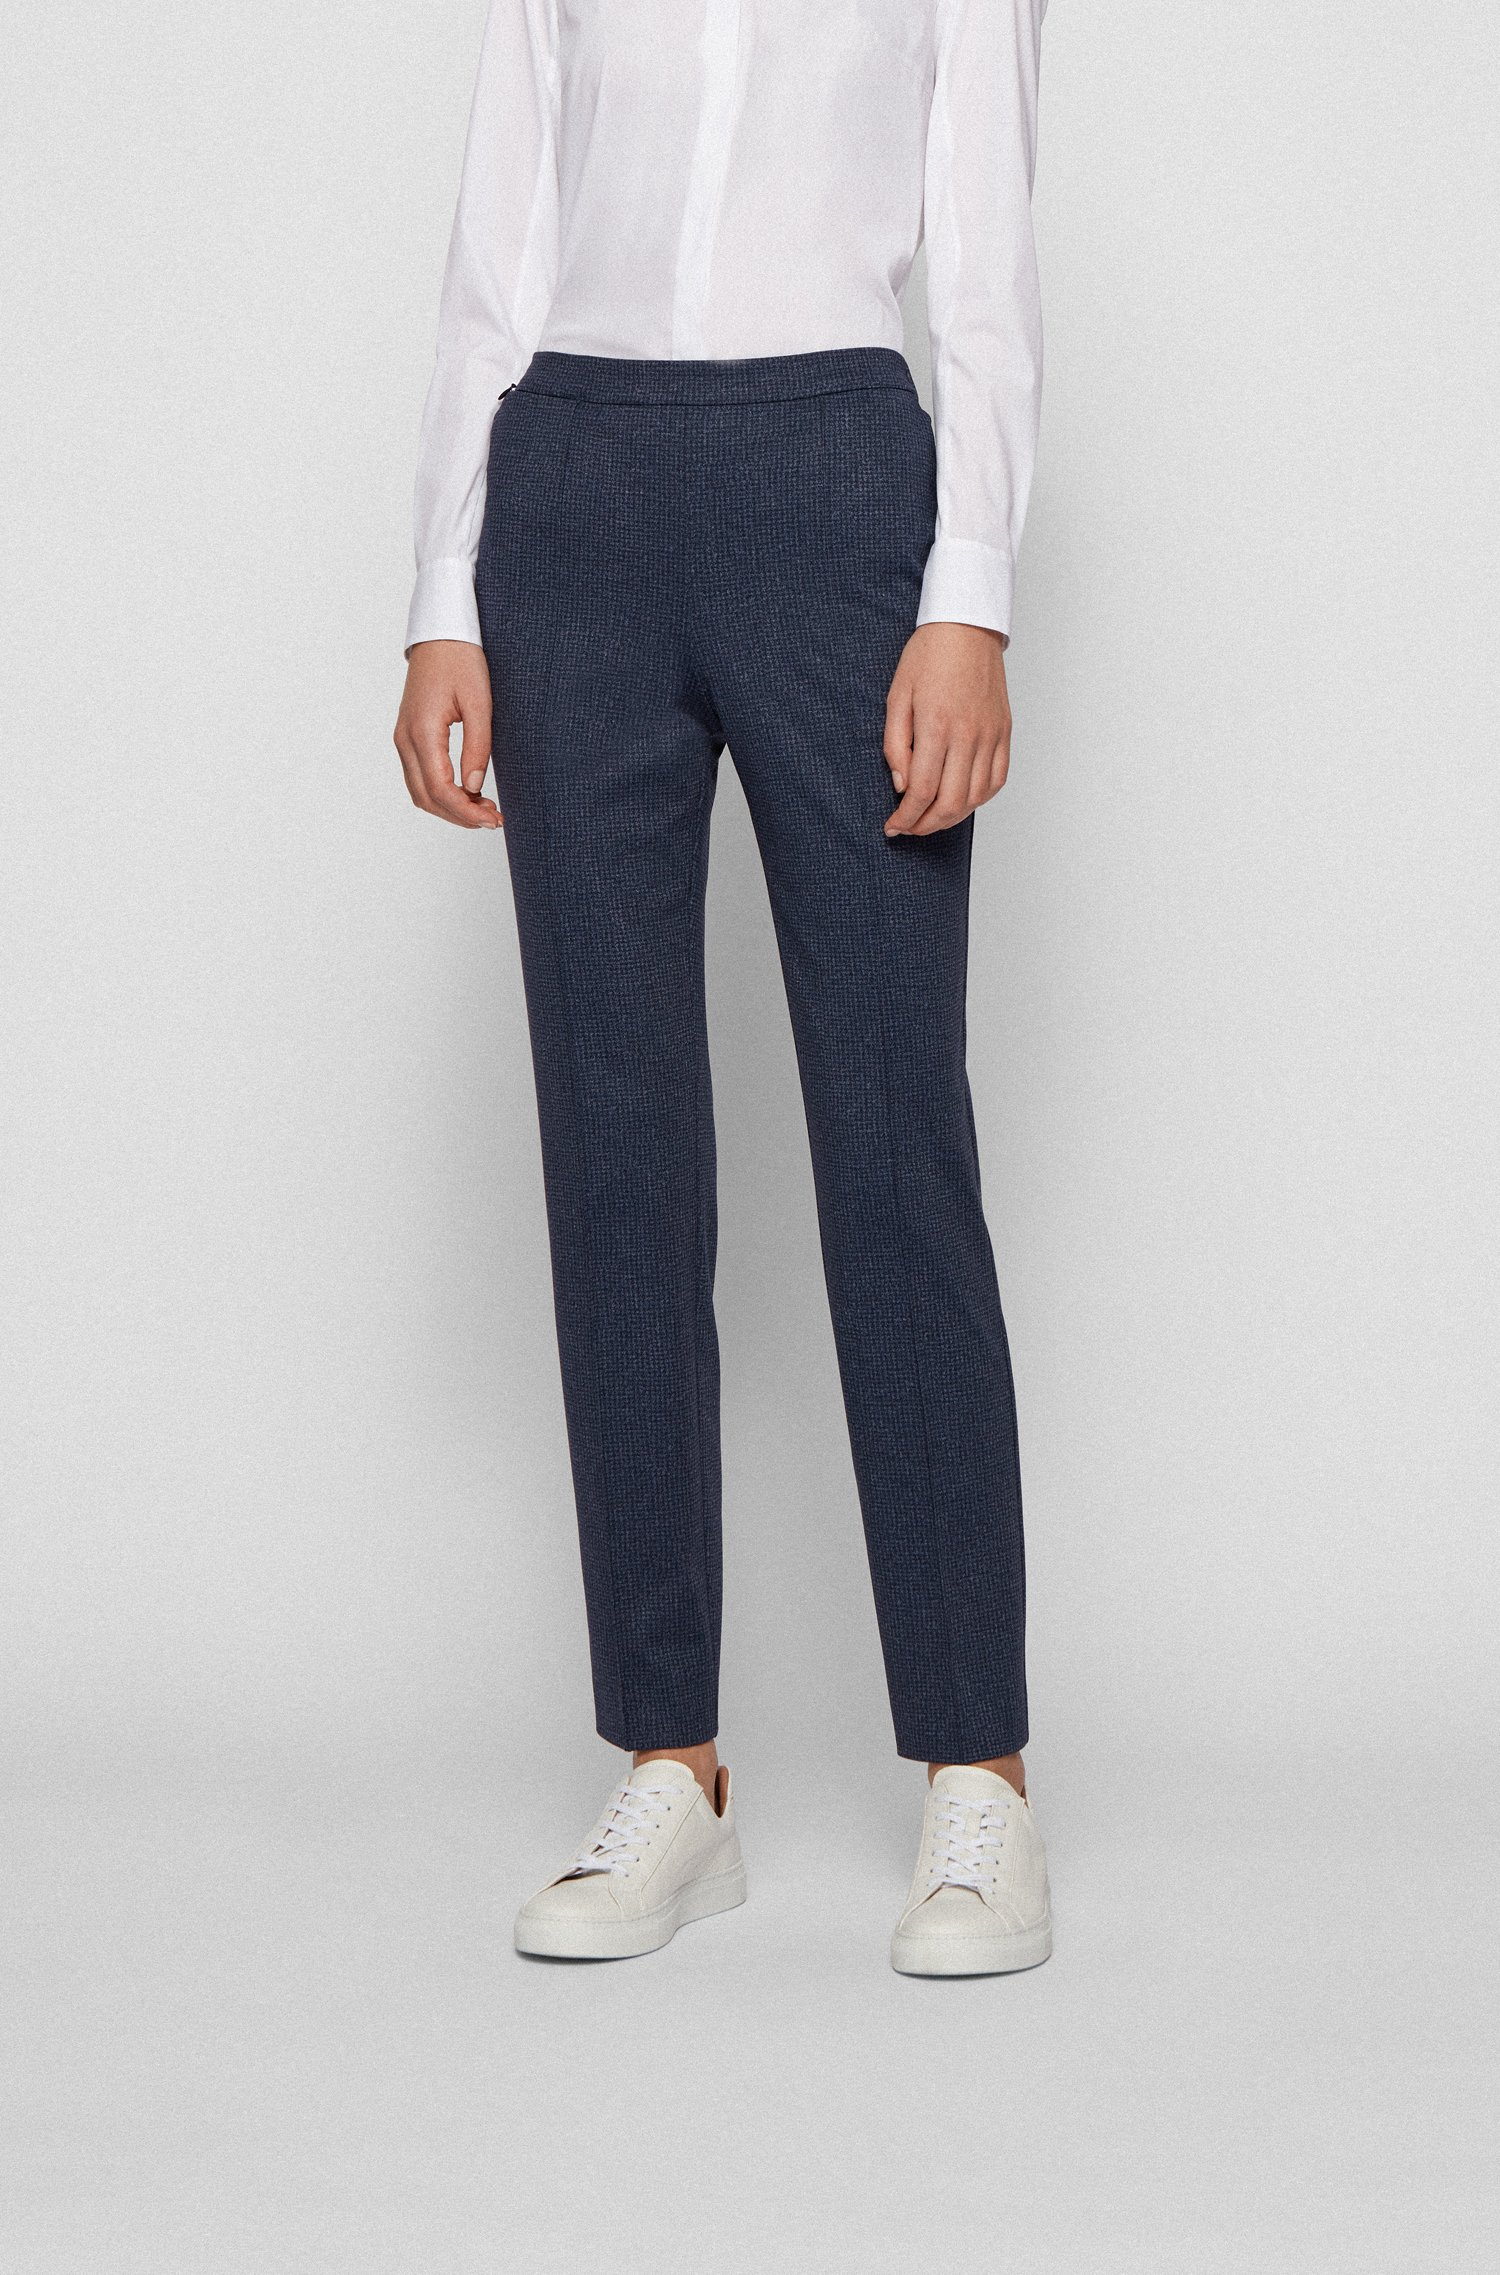 Regular-fit trousers in printed Japanese jersey, Patterned